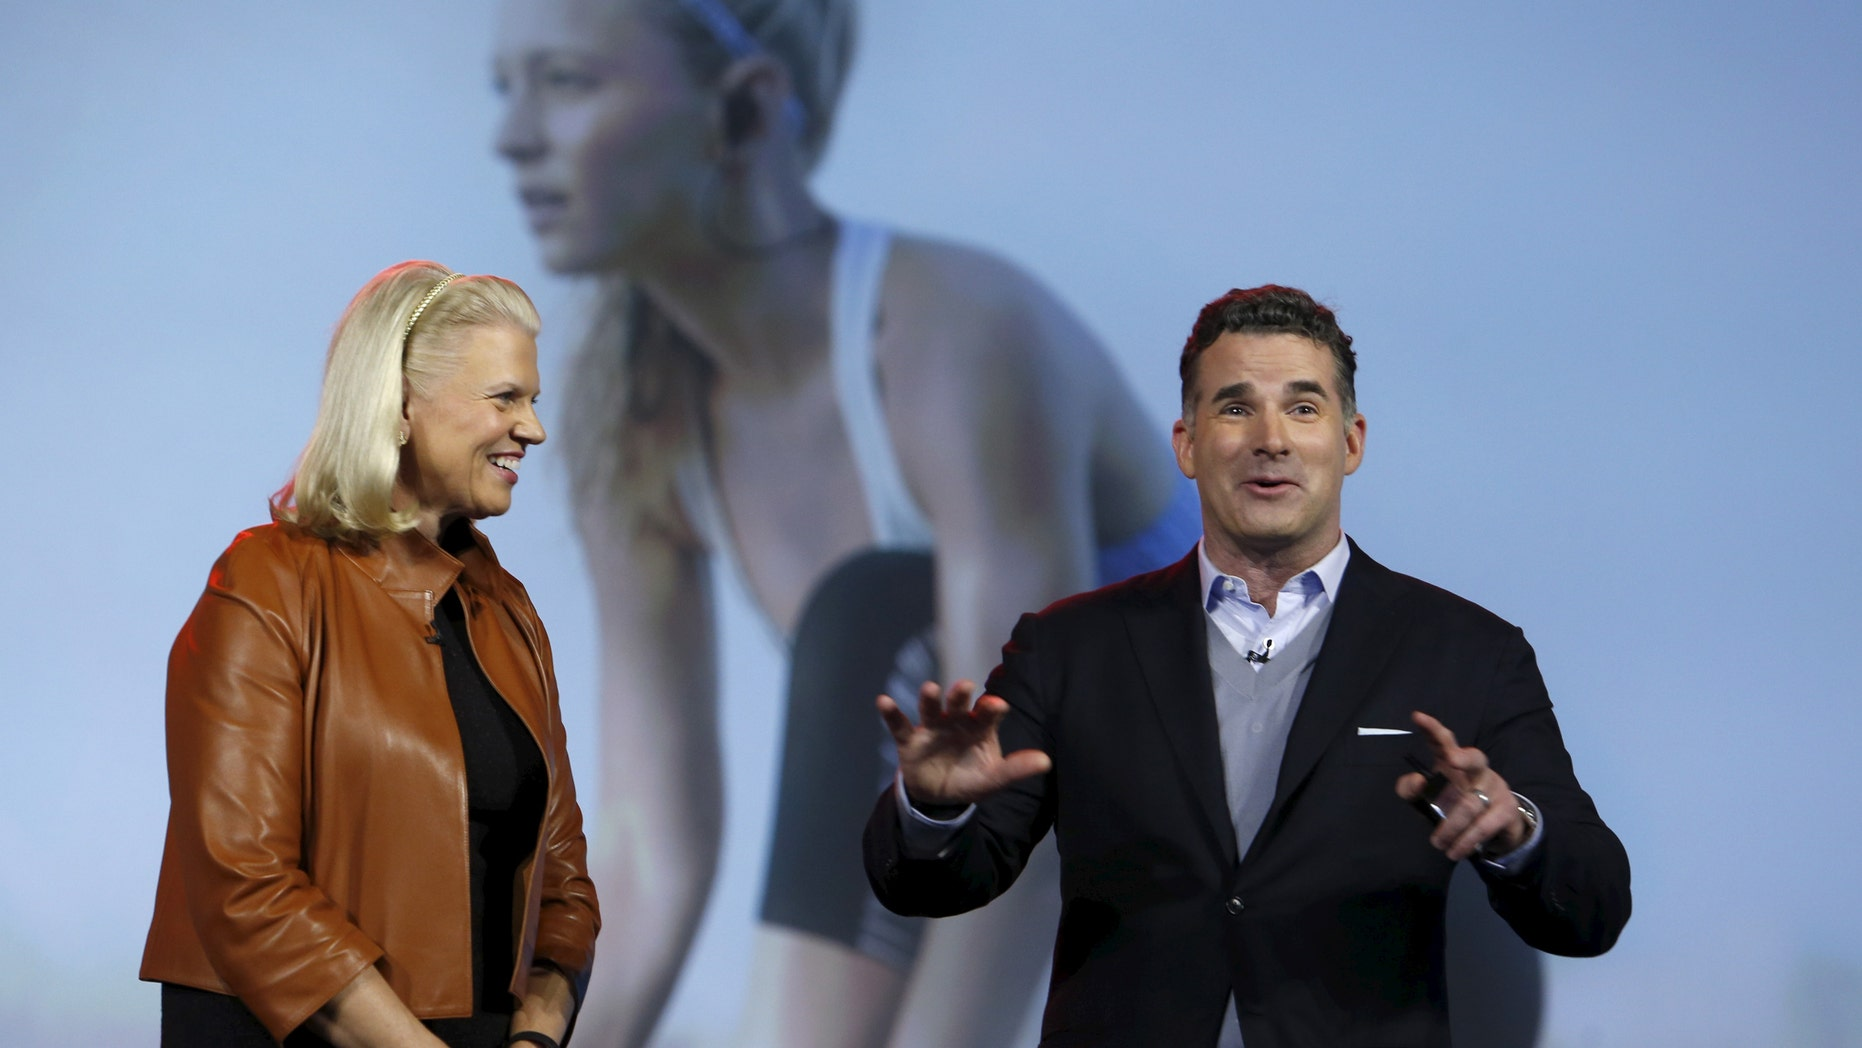 Ginni Rometty (L), chairman, president and CEO of IBM, listens to Kevin Plank, founder and CEO of Under Armour, during her keynote address at the 2016 CES trade show in Las Vegas, Nevada, Jan. 6, 2016. (REUTERS/Steve Marcus)